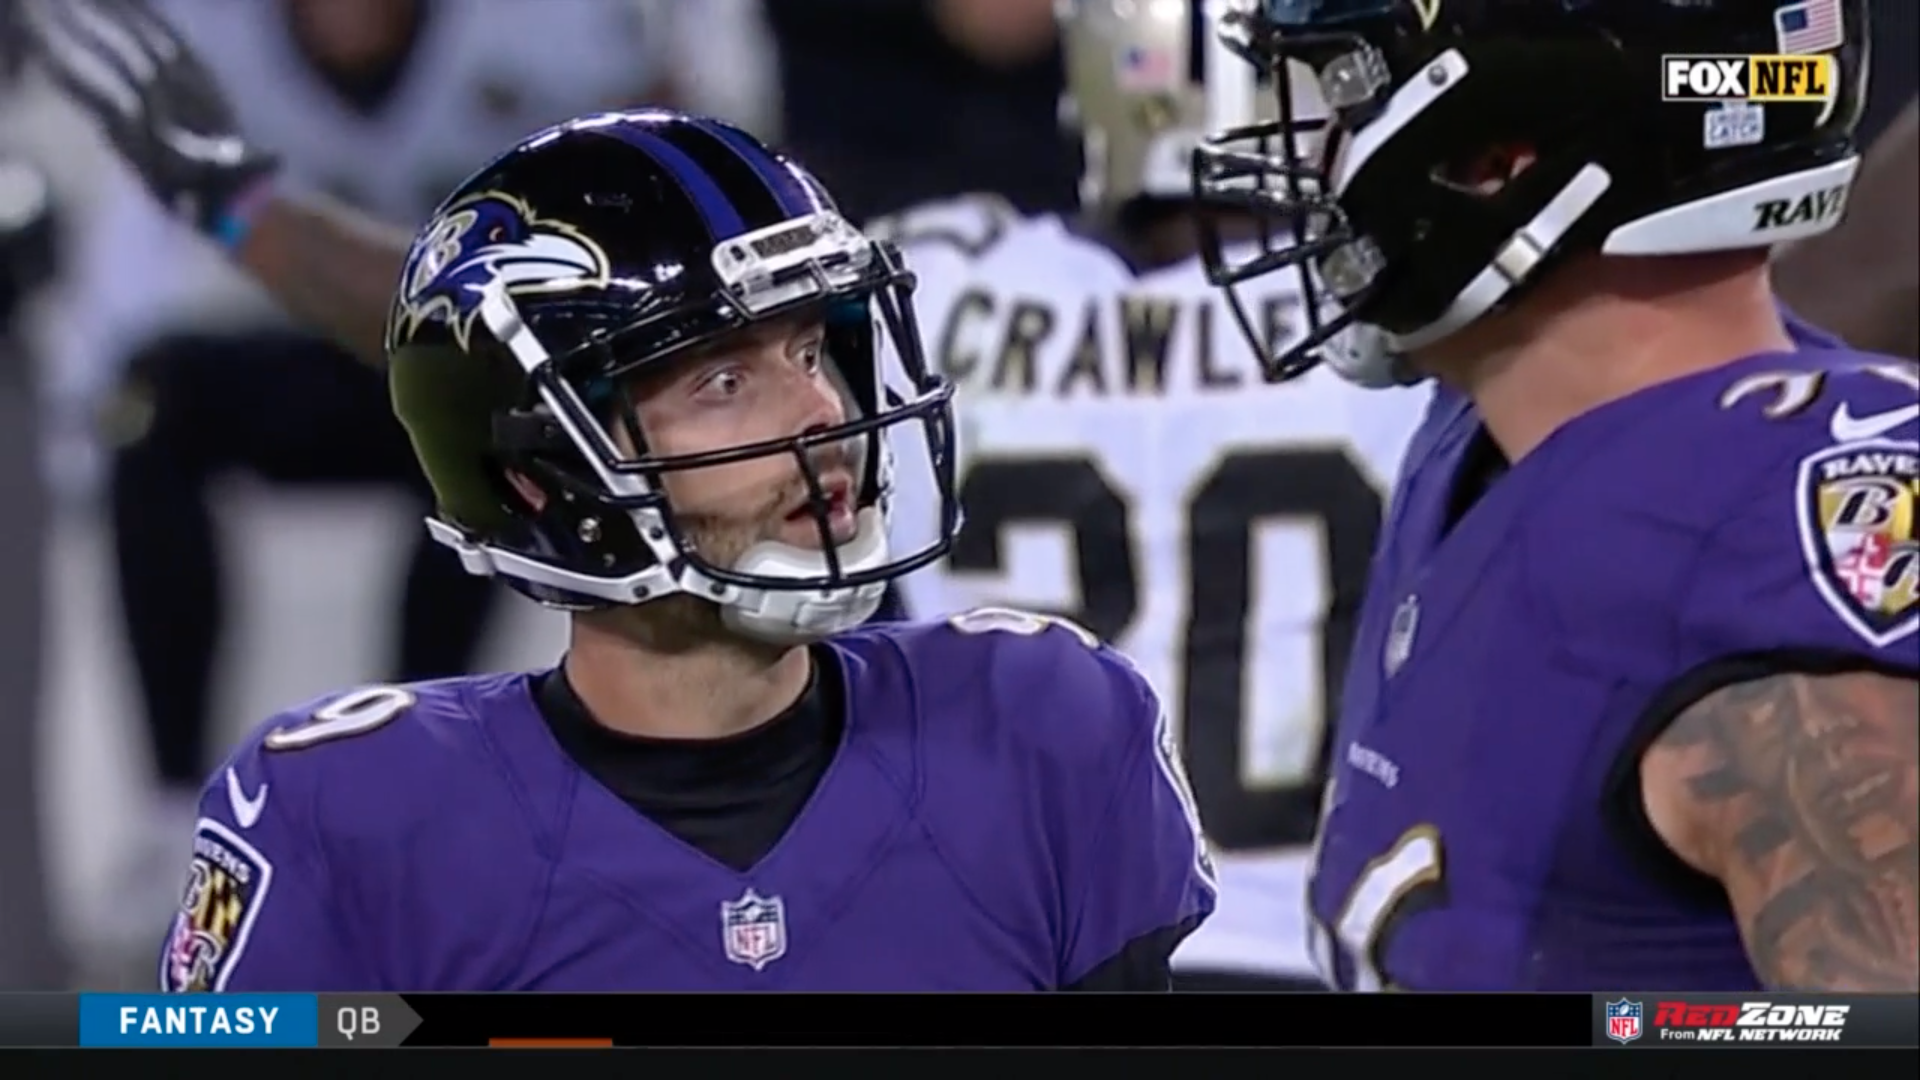 Justin Tucker, the NFL's most accurate kicker of all time, missed a game-tying PAT vs. the Saints